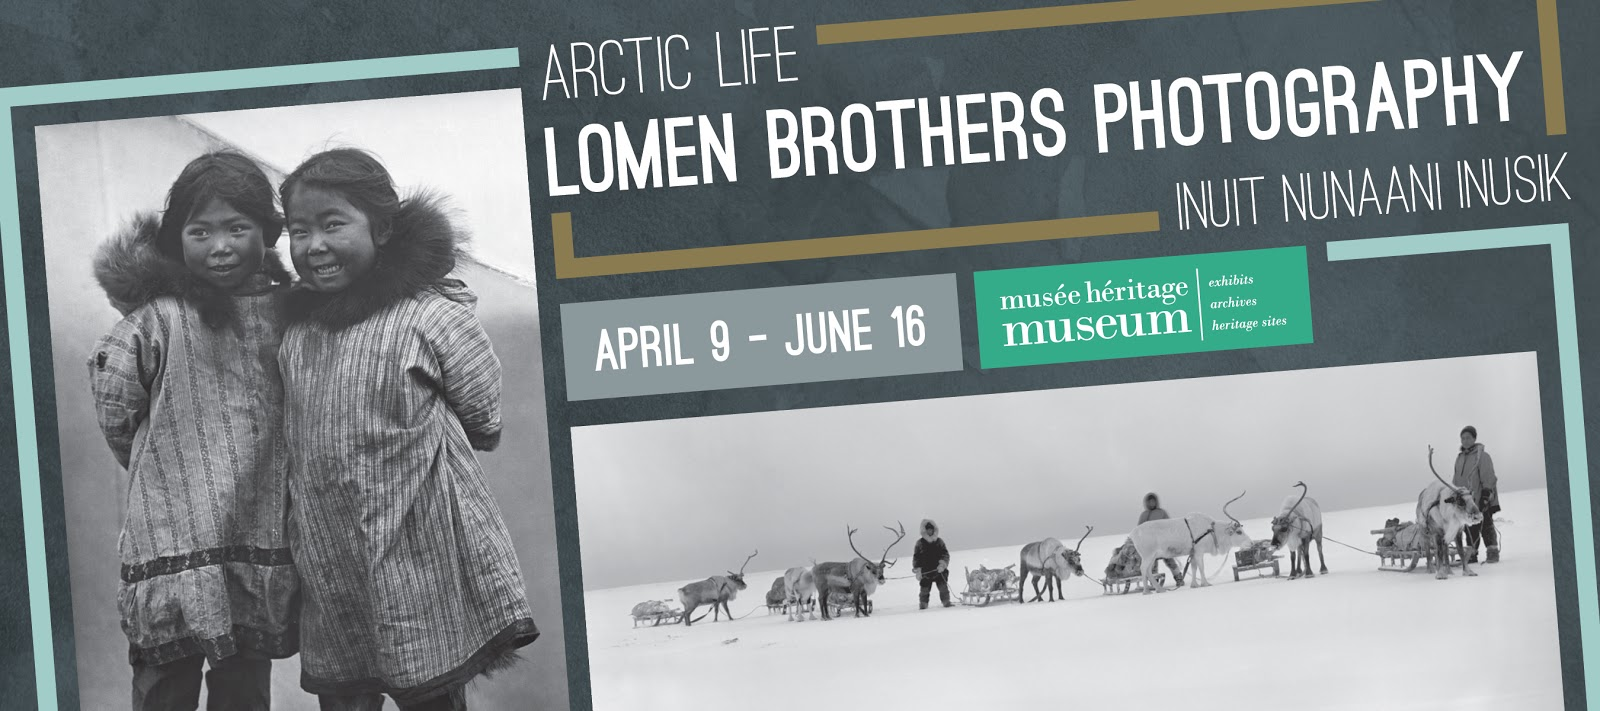 New exhibit at the museum, Arctic Life: Lomen Brothers